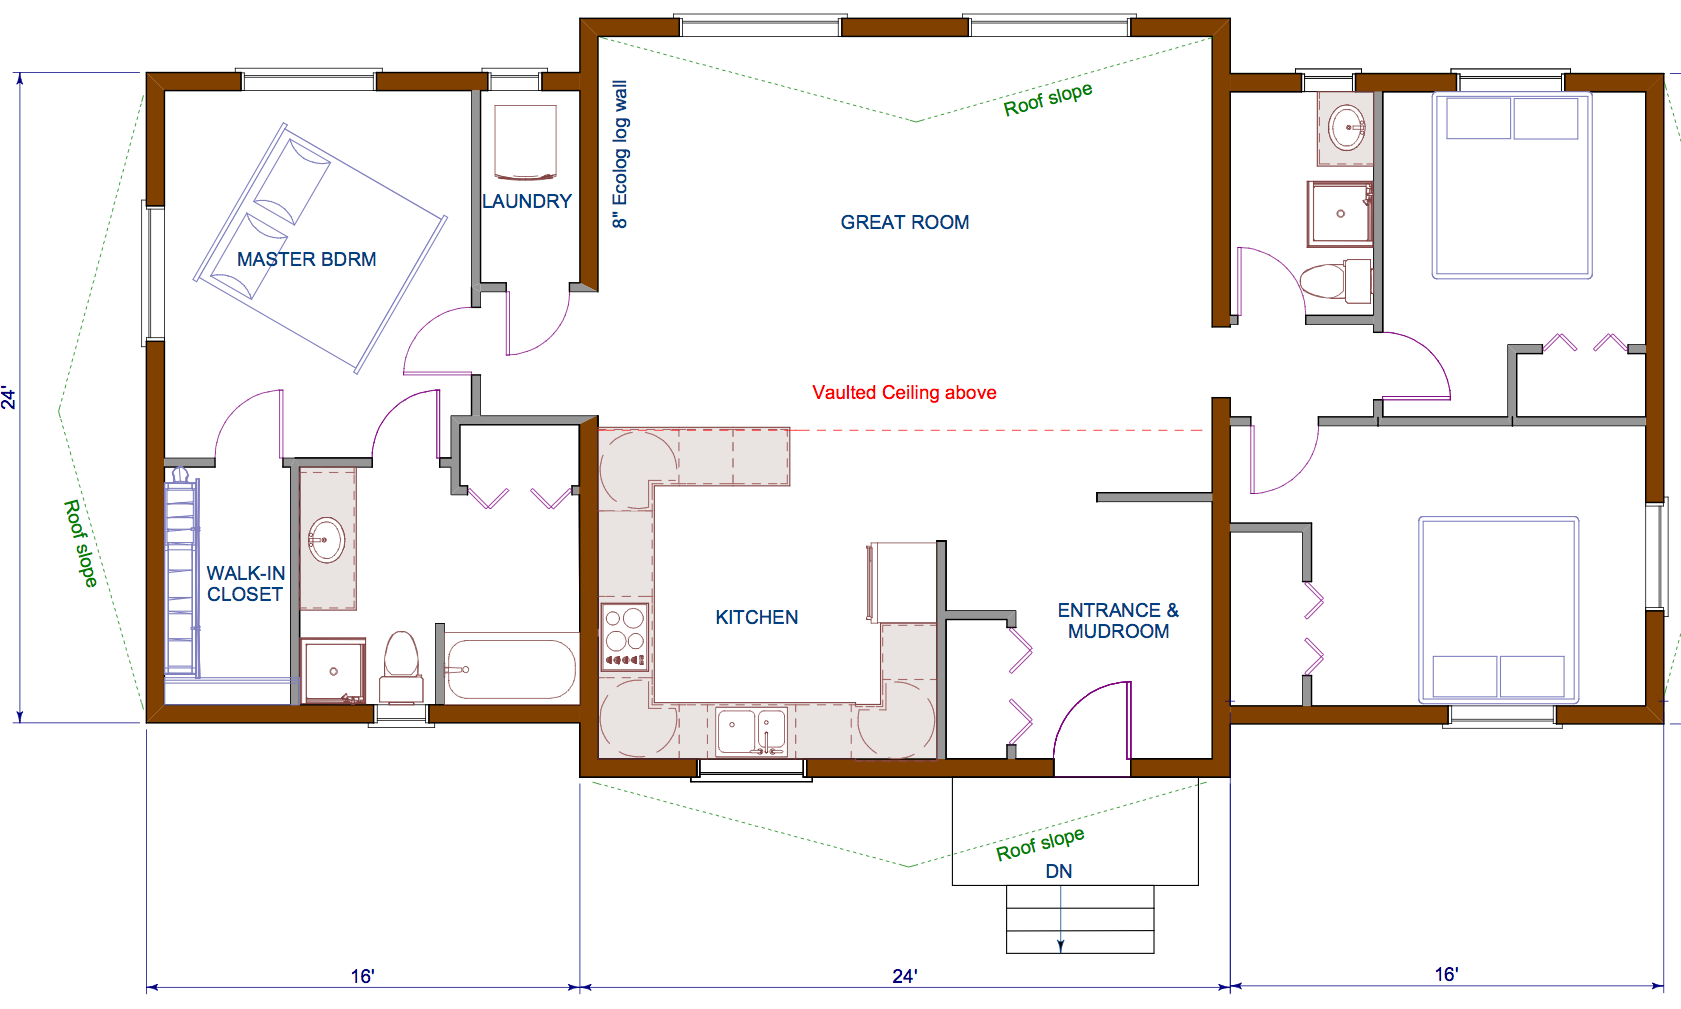 This Floor Plan Features Home Bungalow House Simple Building Make    This Floor Plan Features Home Bungalow House Simple Building Make Floor Small Design Draw Symbols Plans Open Plan Designs Barndominium Template Tow